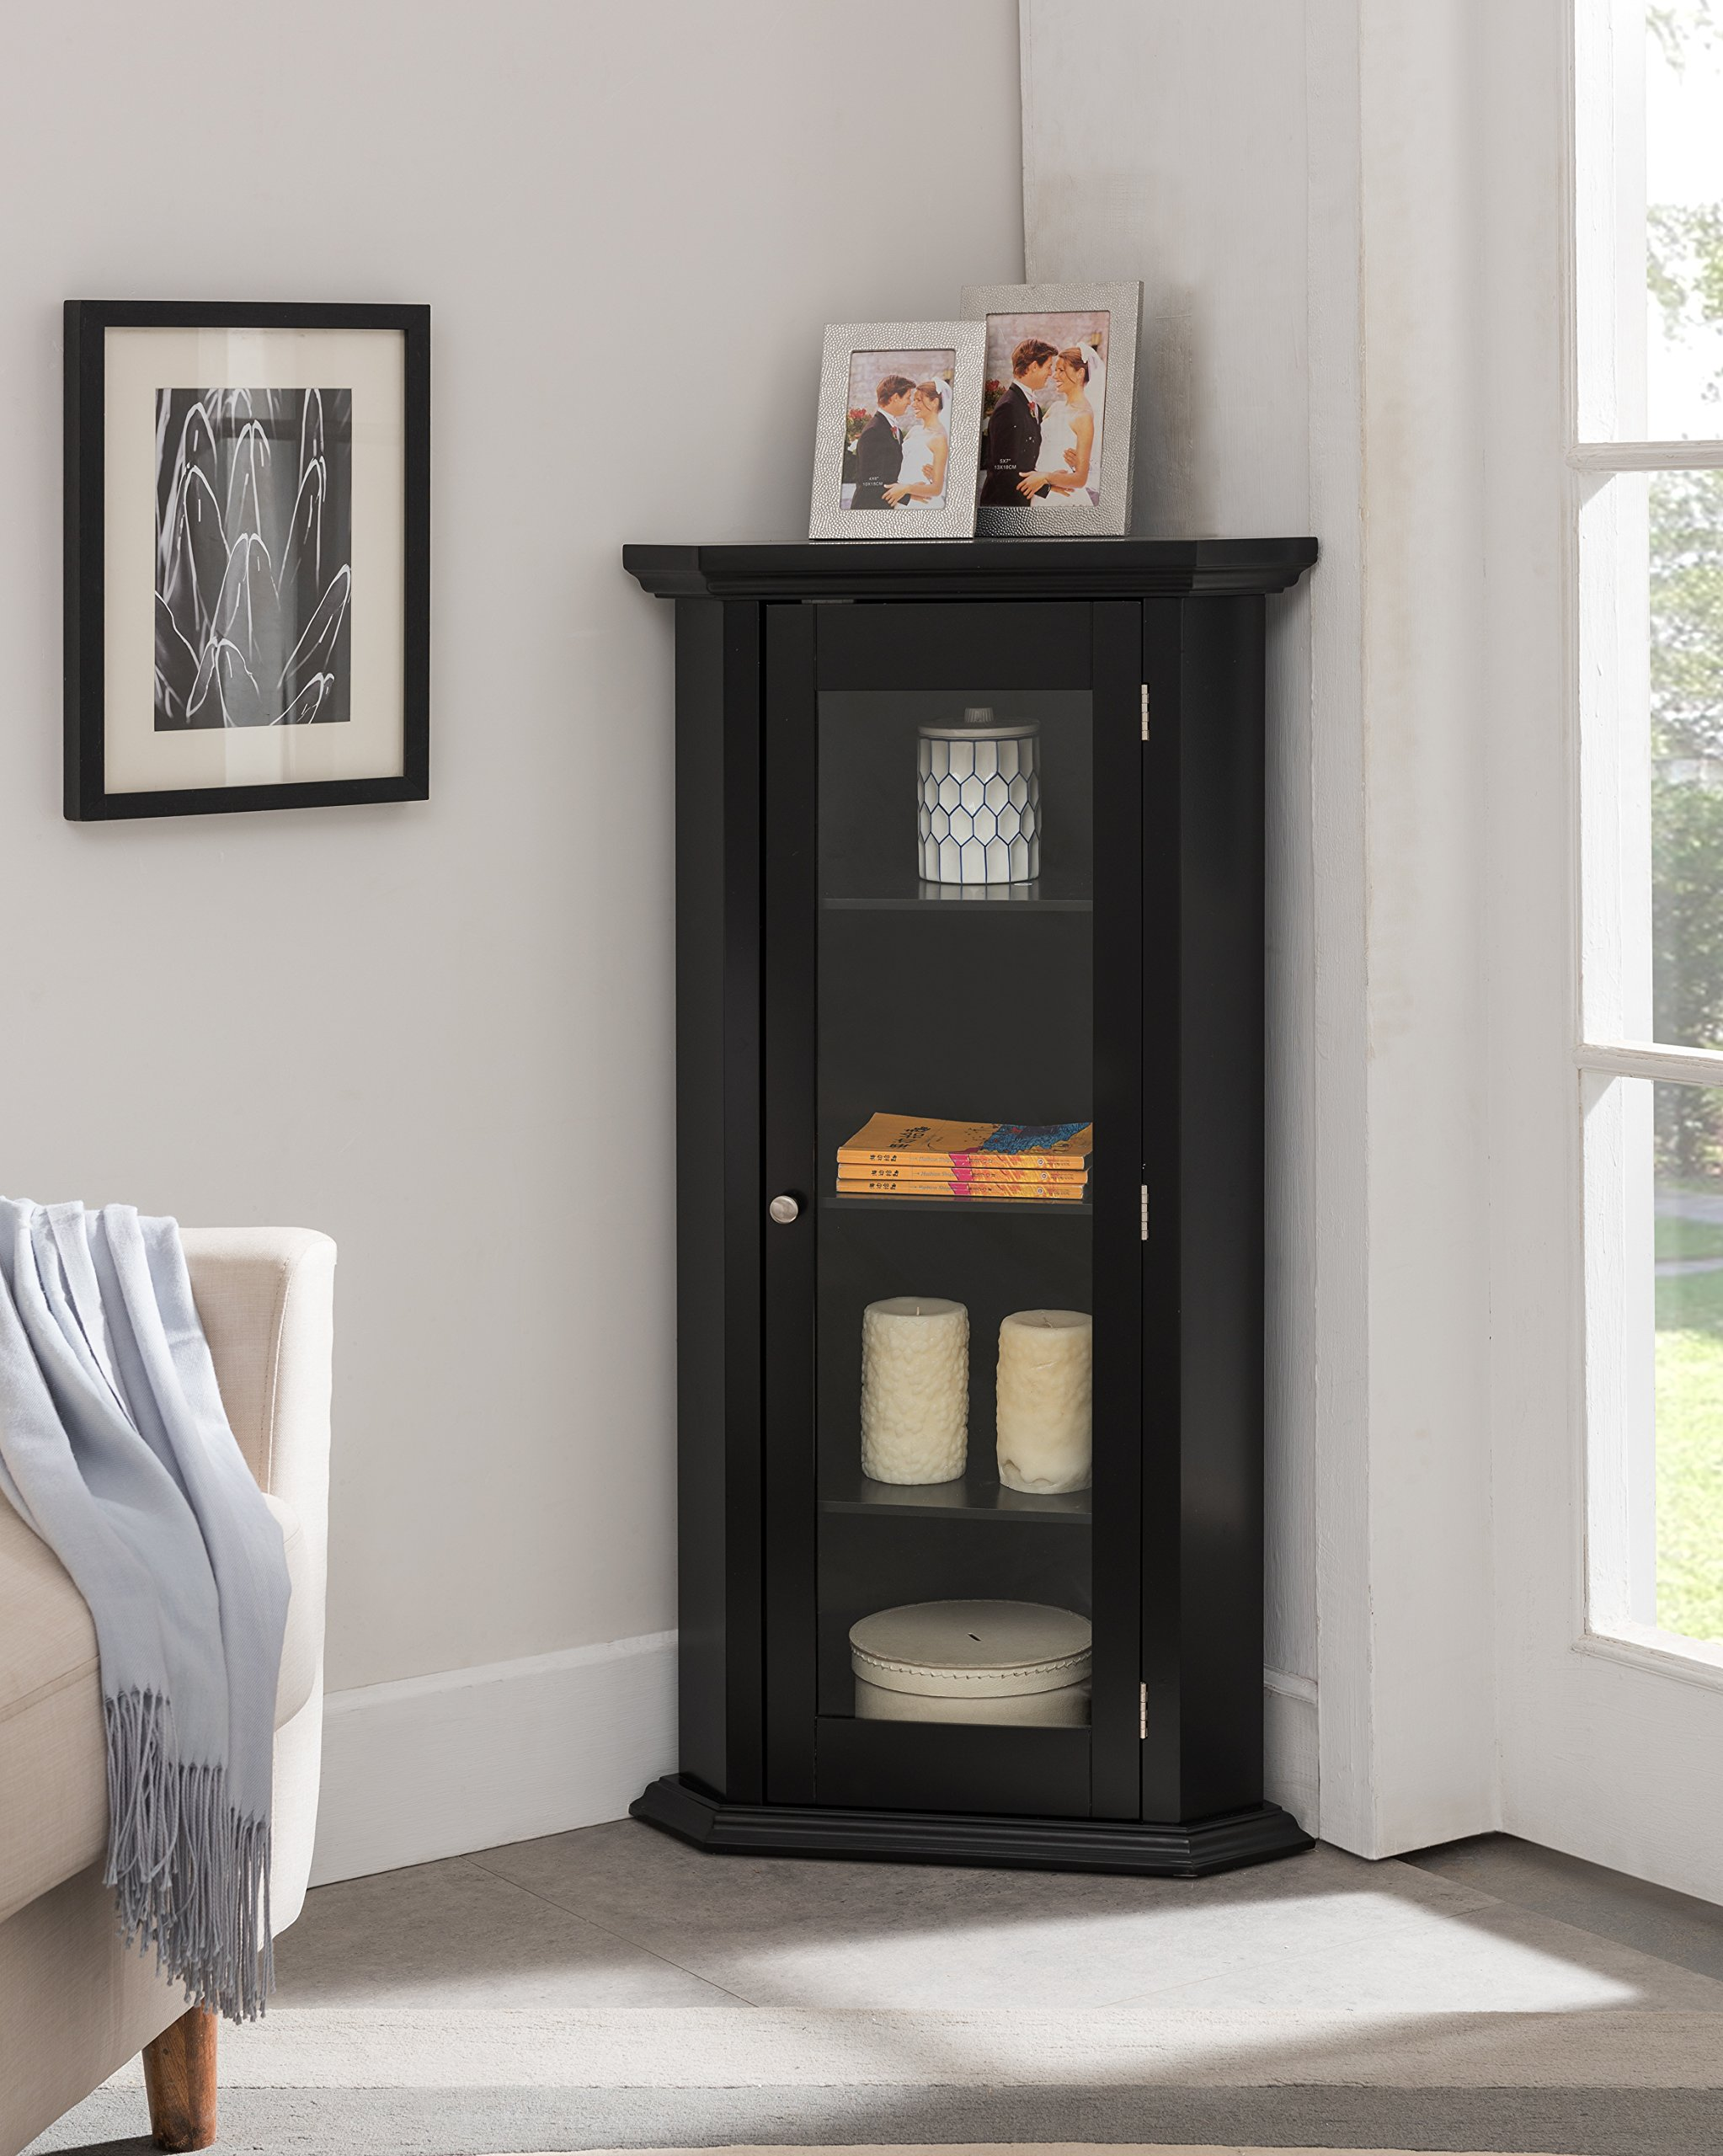 Kings Brand Furniture - Corner Curio Storage Cabinet with Glass Door, Black Finish by Kings Brand Furniture